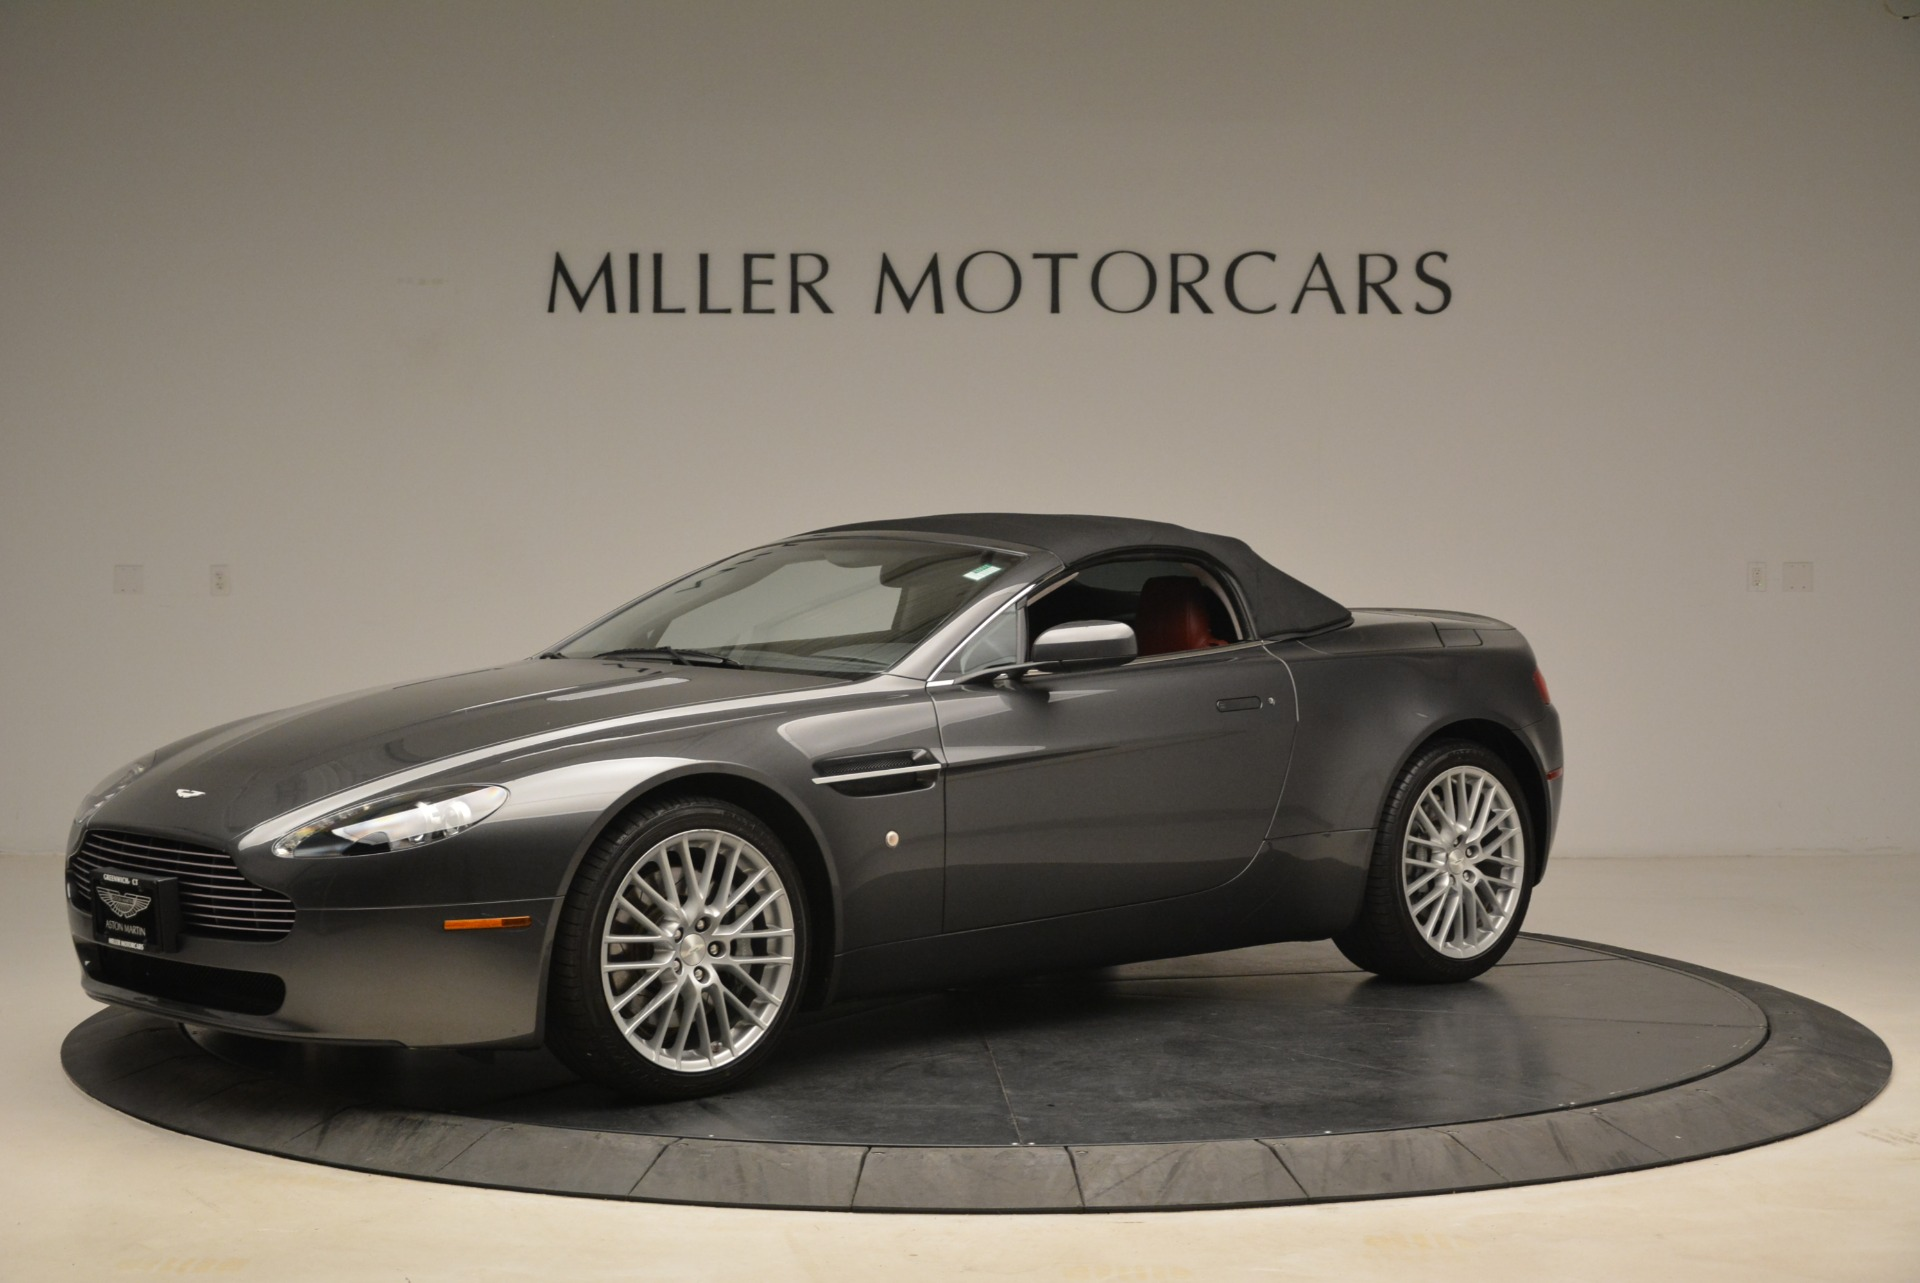 Used 2009 Aston Martin V8 Vantage Roadster For Sale In Westport, CT 2123_p14